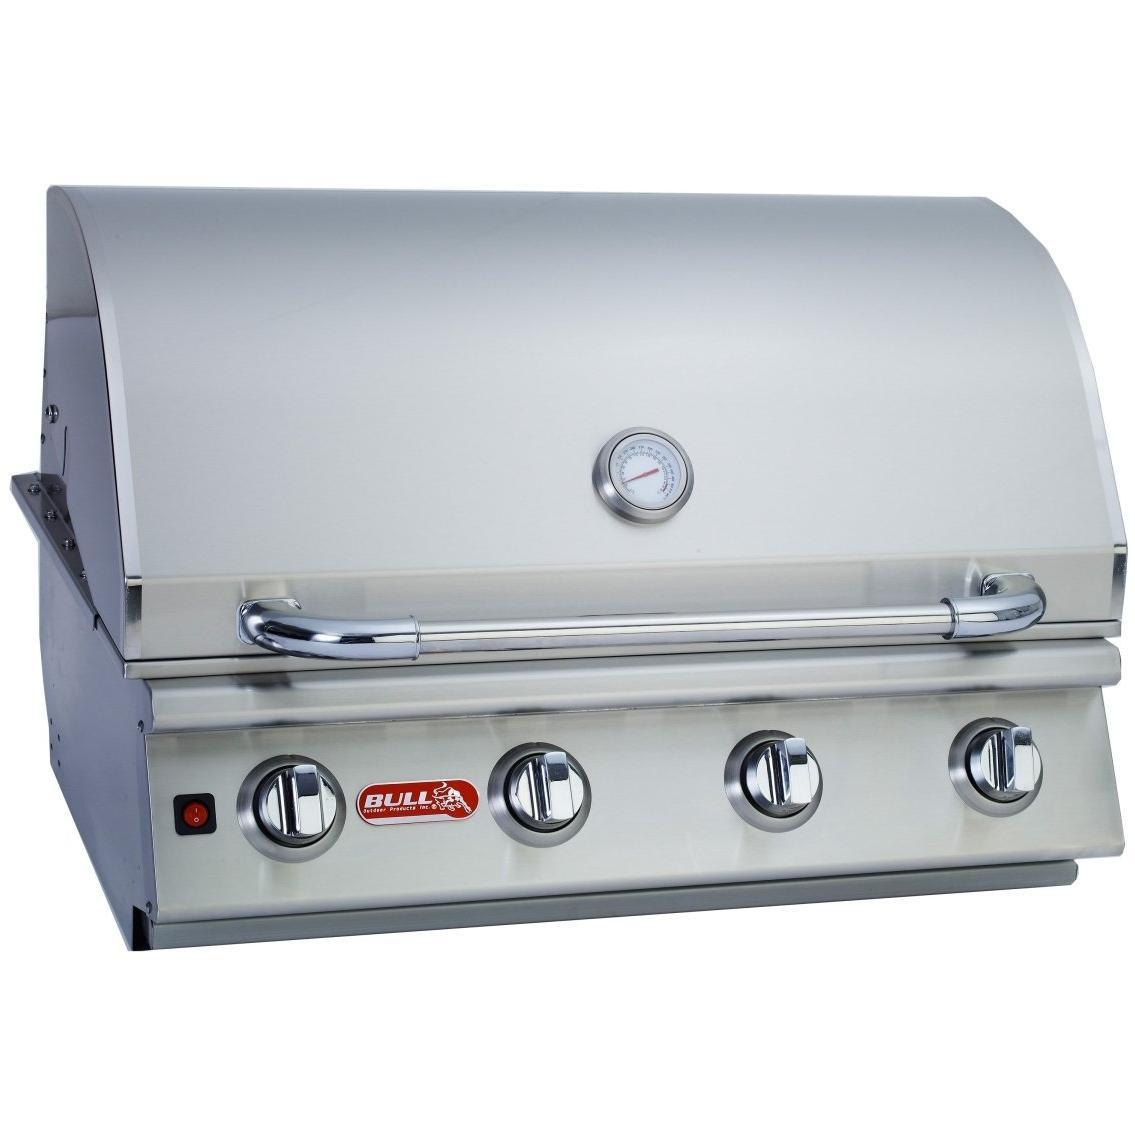 Bull Lonestar Select 4-burner Built-in Propane Gas Grill at Sears.com